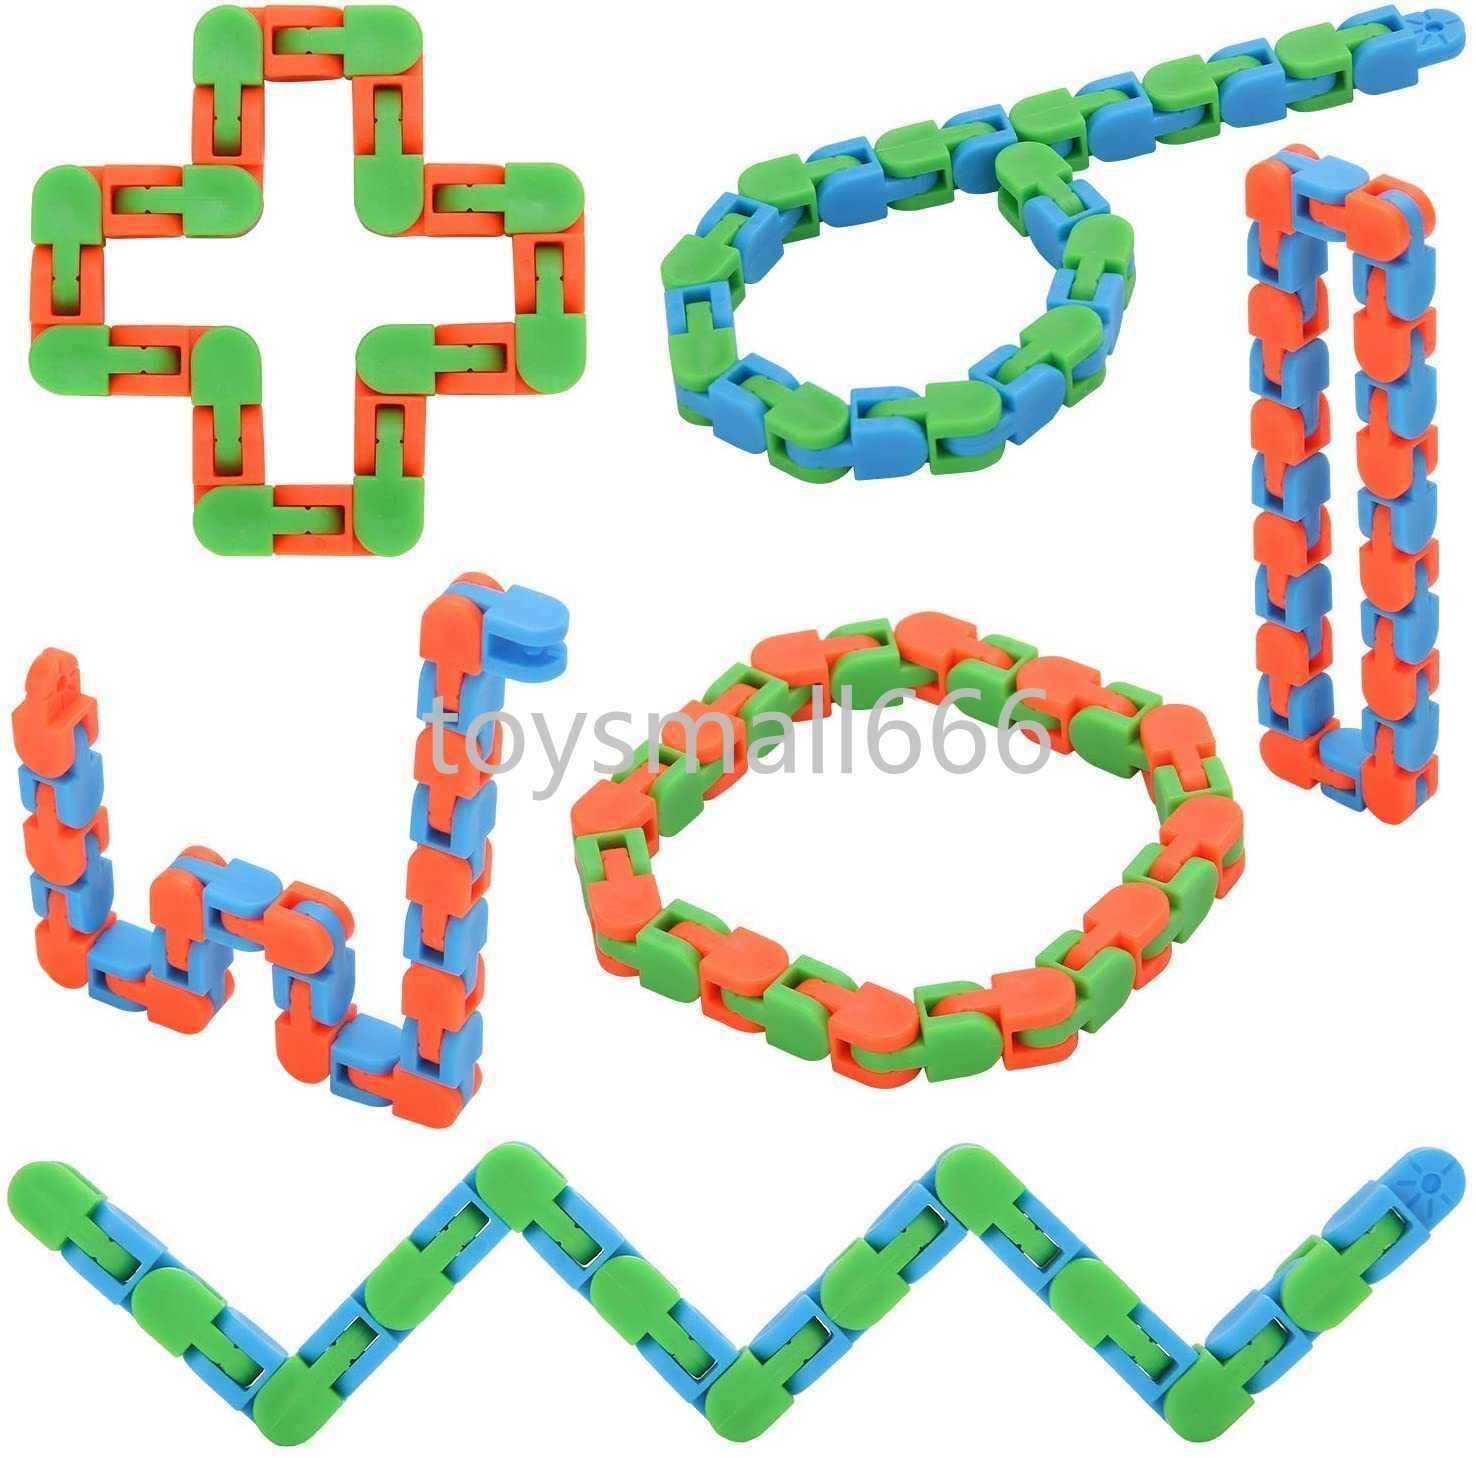 24 Links Wacky Tracks Snap And Click Fidget Toys, Finger Sensory Toys, Snake Puzzles For Stress Relief, Party Bag Fillers